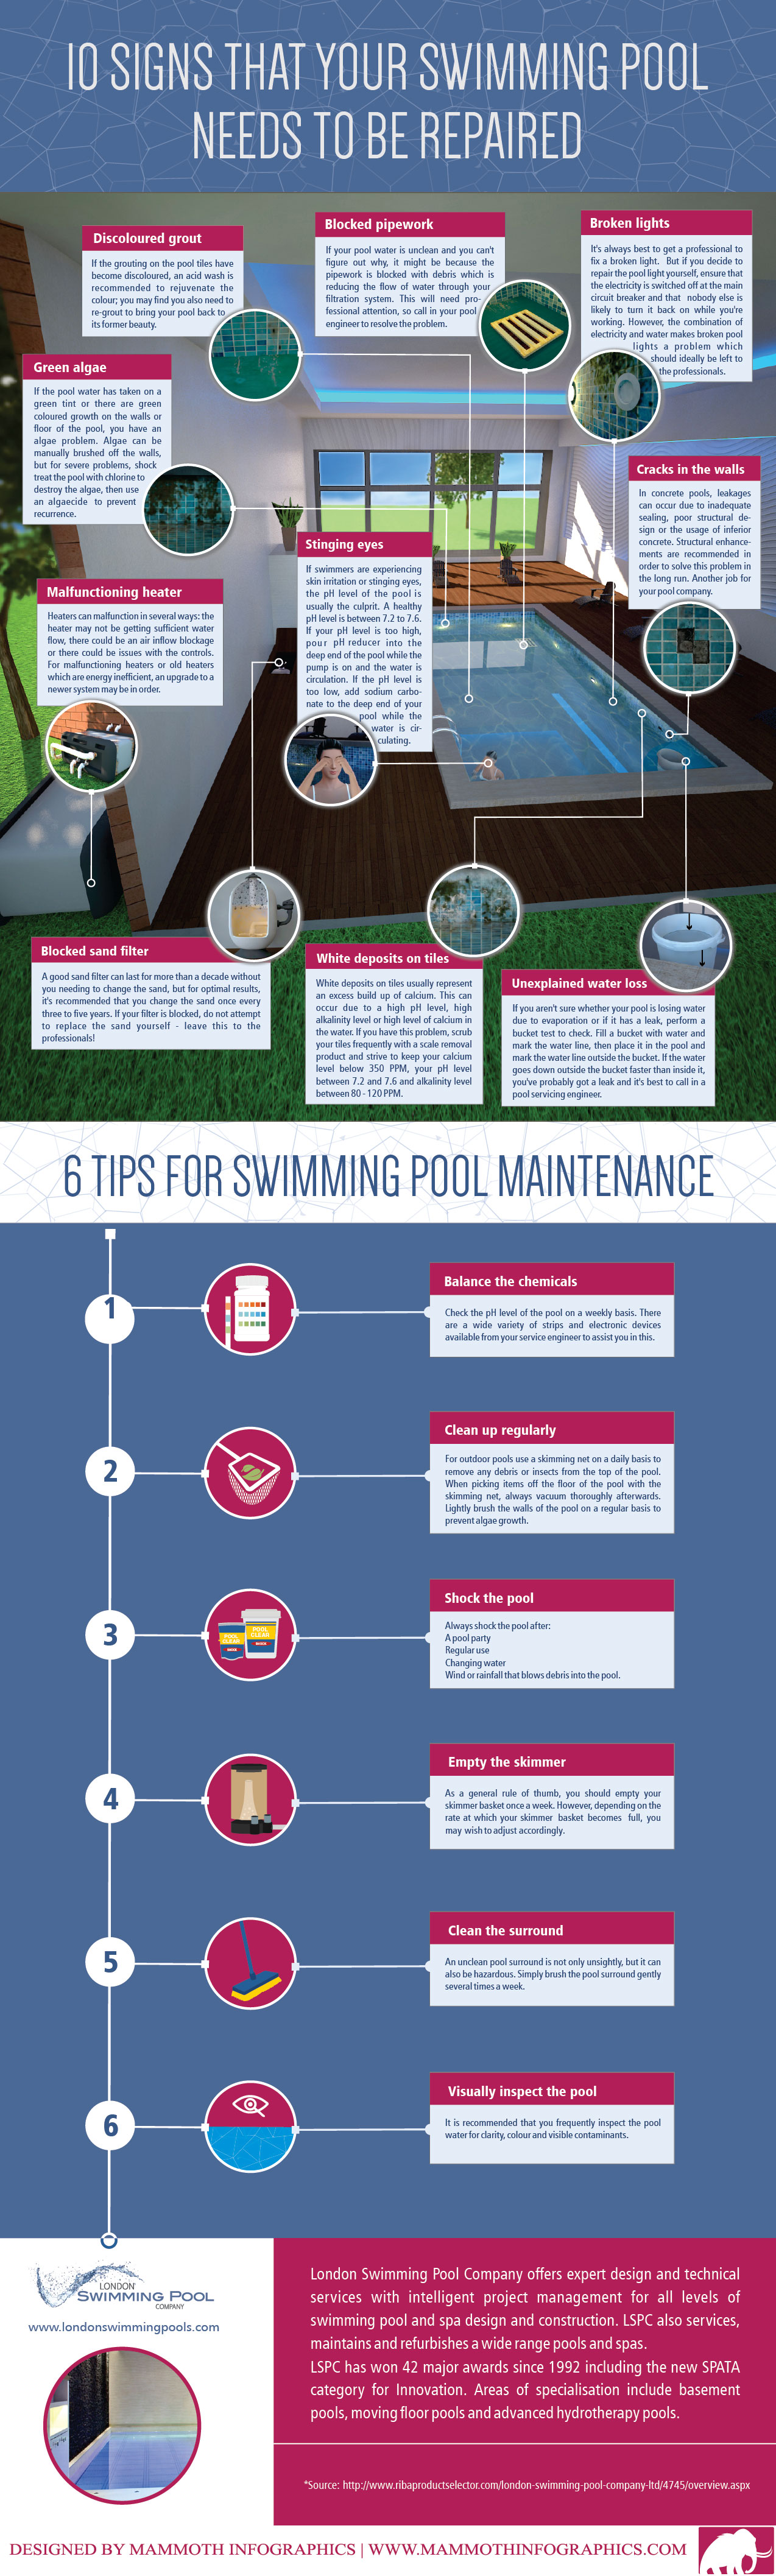 Infographic: 10 Signs Your Pool Needs Repairing